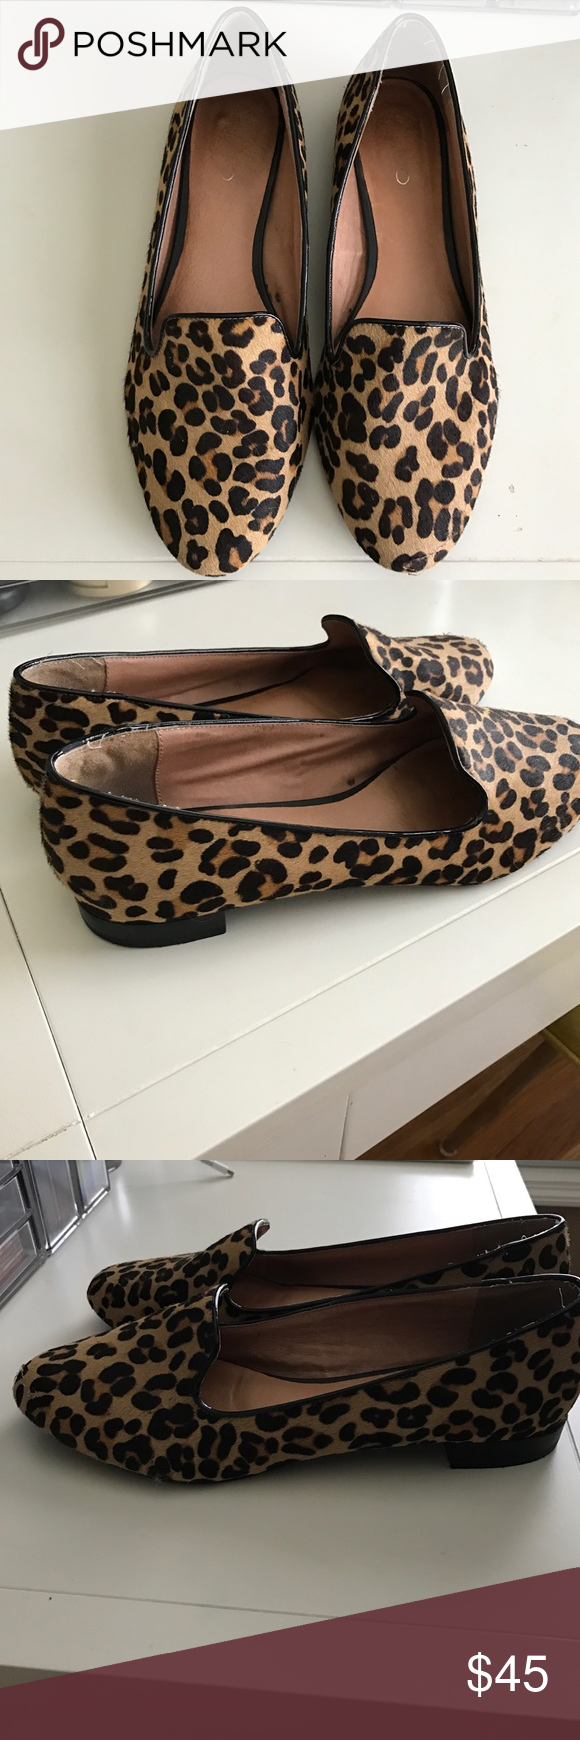 c2800265df79 Aldo leopard flats Leopard flats by Aldo, hardly worn in great condition! Aldo  Shoes Flats & Loafers